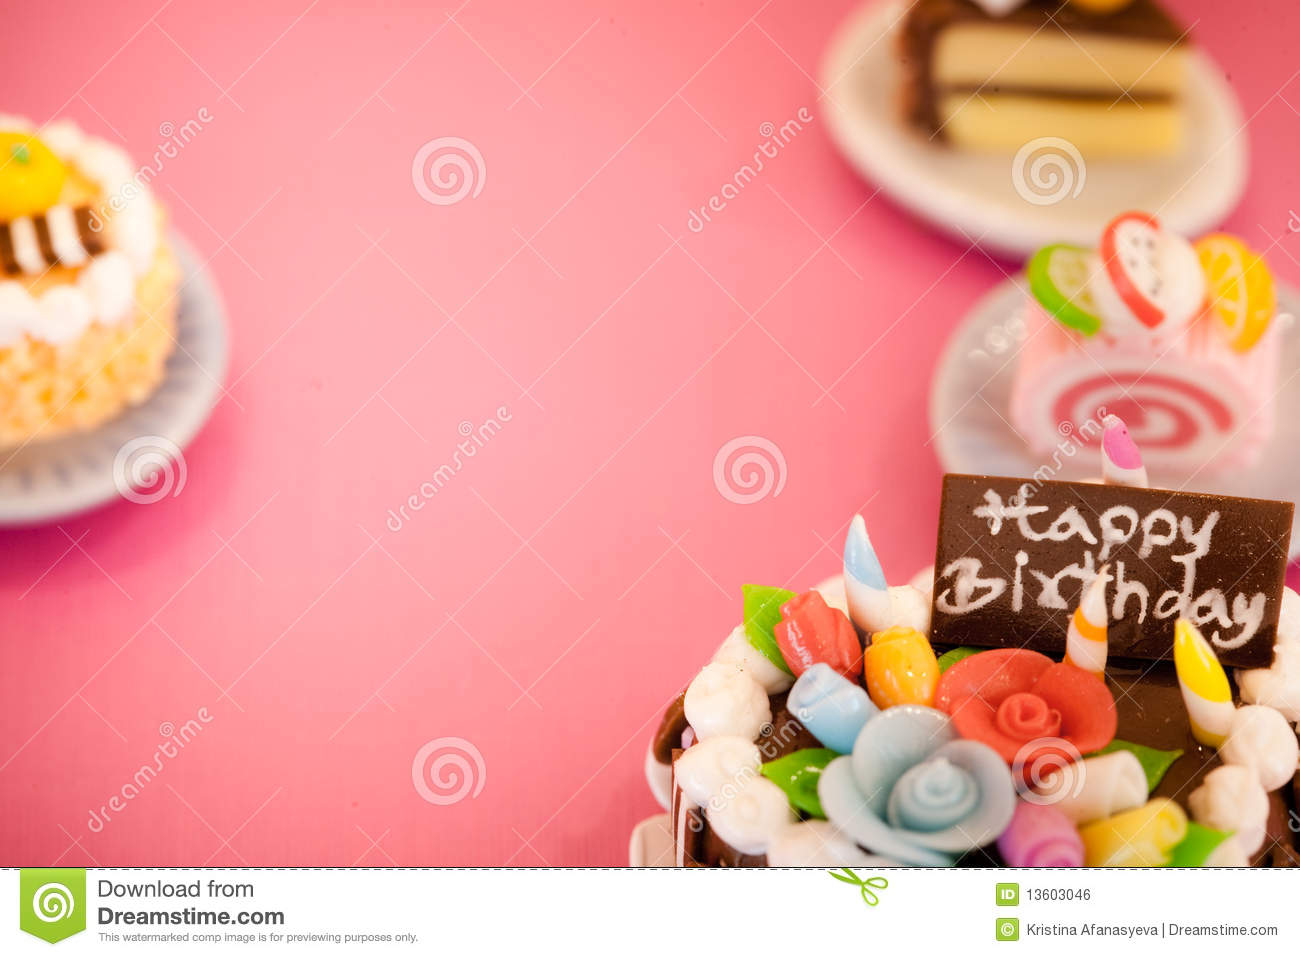 Birthday Cake Wallpaper 3d Download Birthday Cakes Background Royalty Free Stock Image Image